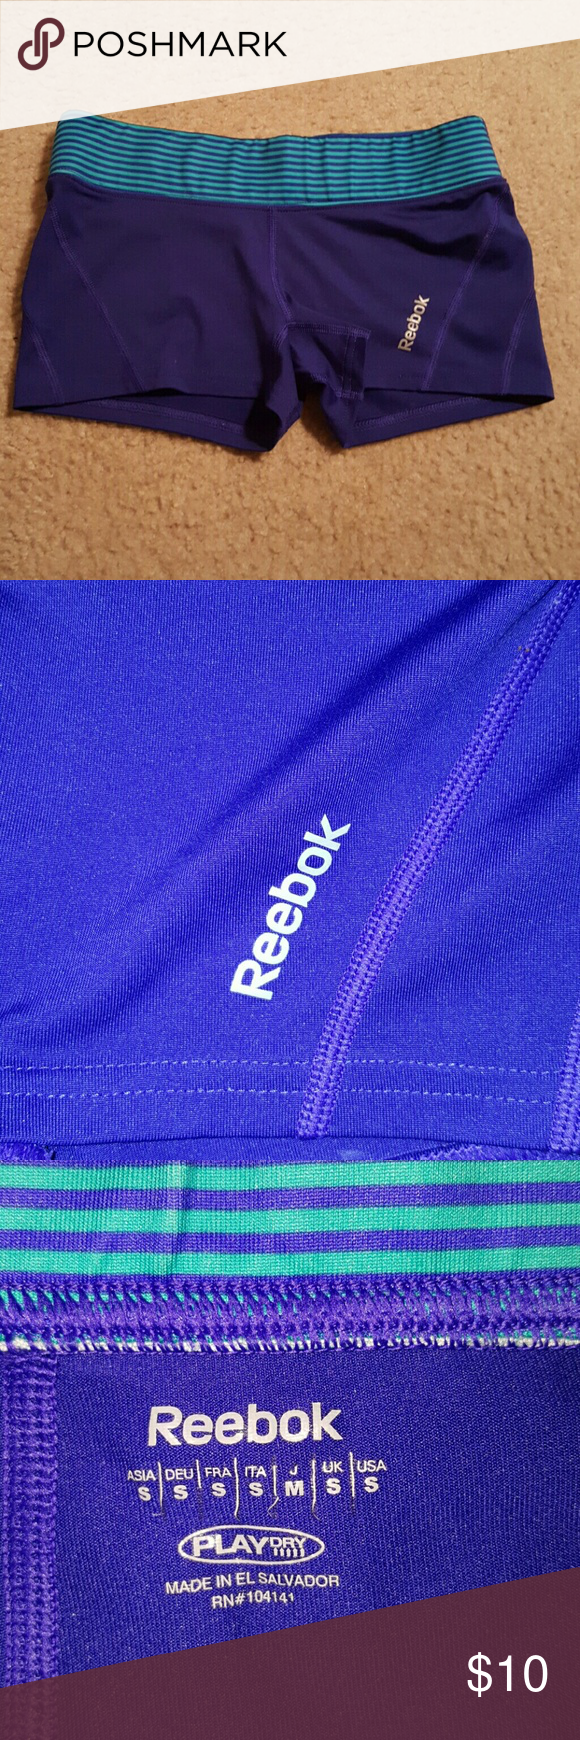 Play dry reebok spandex blue sz small Sz small great condition no stains or holes Shorts